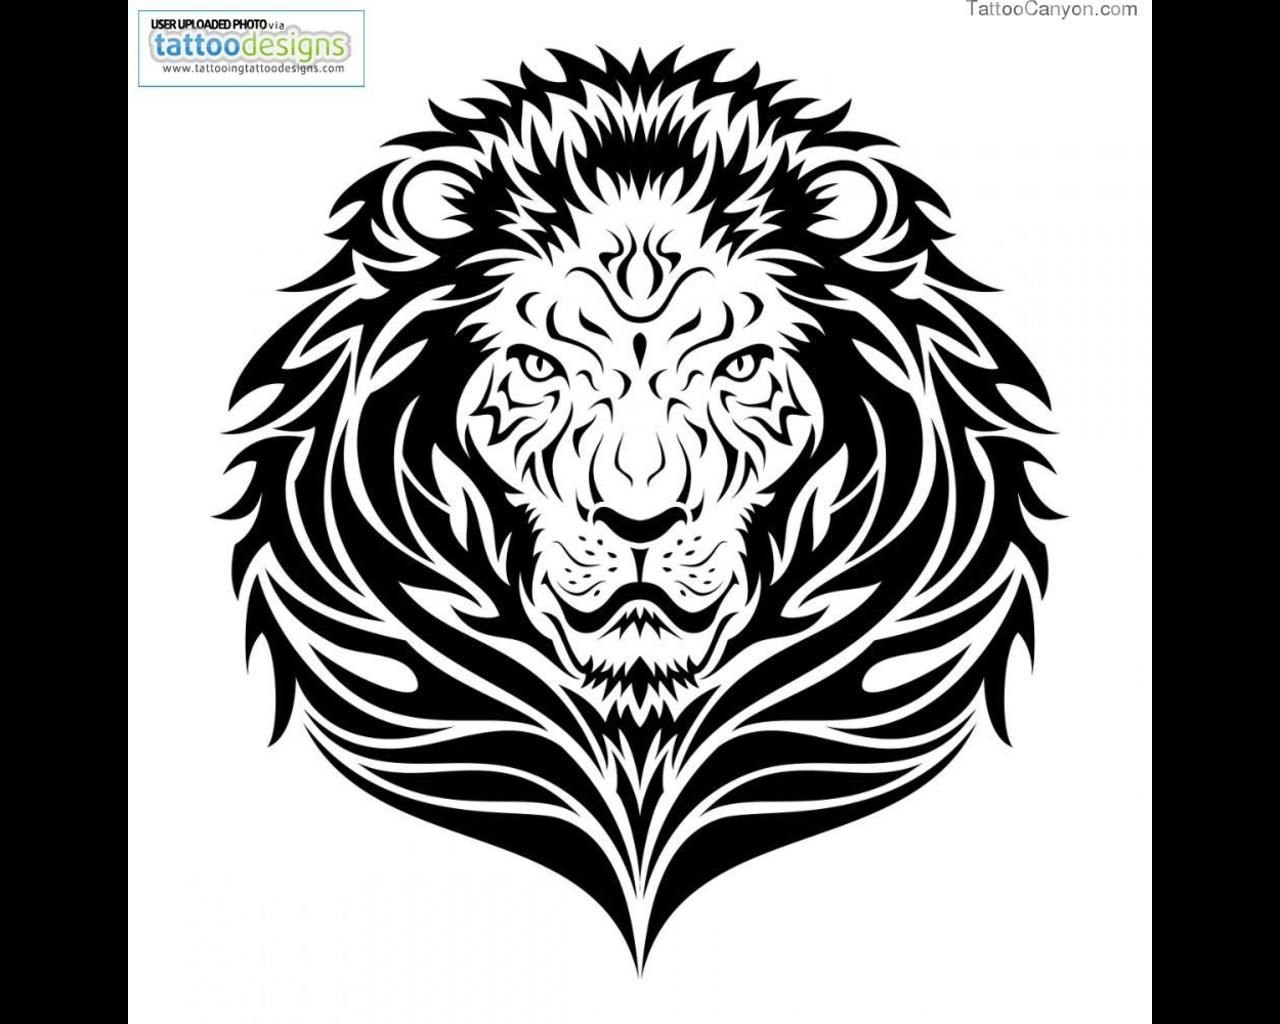 free-download-tattoo-42-lion-tribal-tattoo-design-42x42.jpg ... - Löwe Tattoo Vorlage